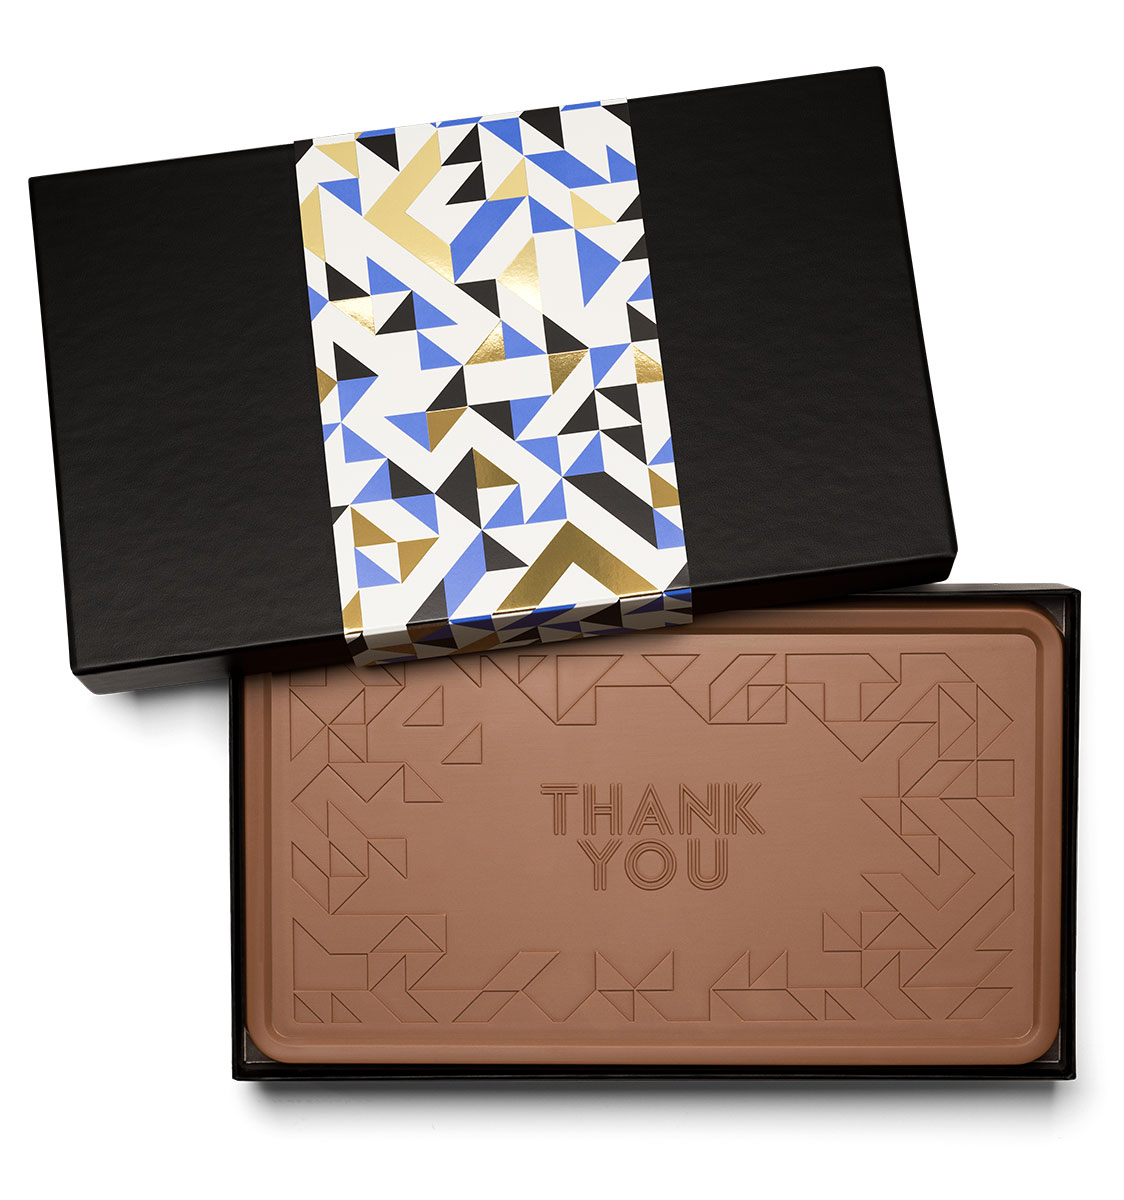 ready-gift-chocolate-SHX215006T-thank-you-indulgent-bar-milk-featured